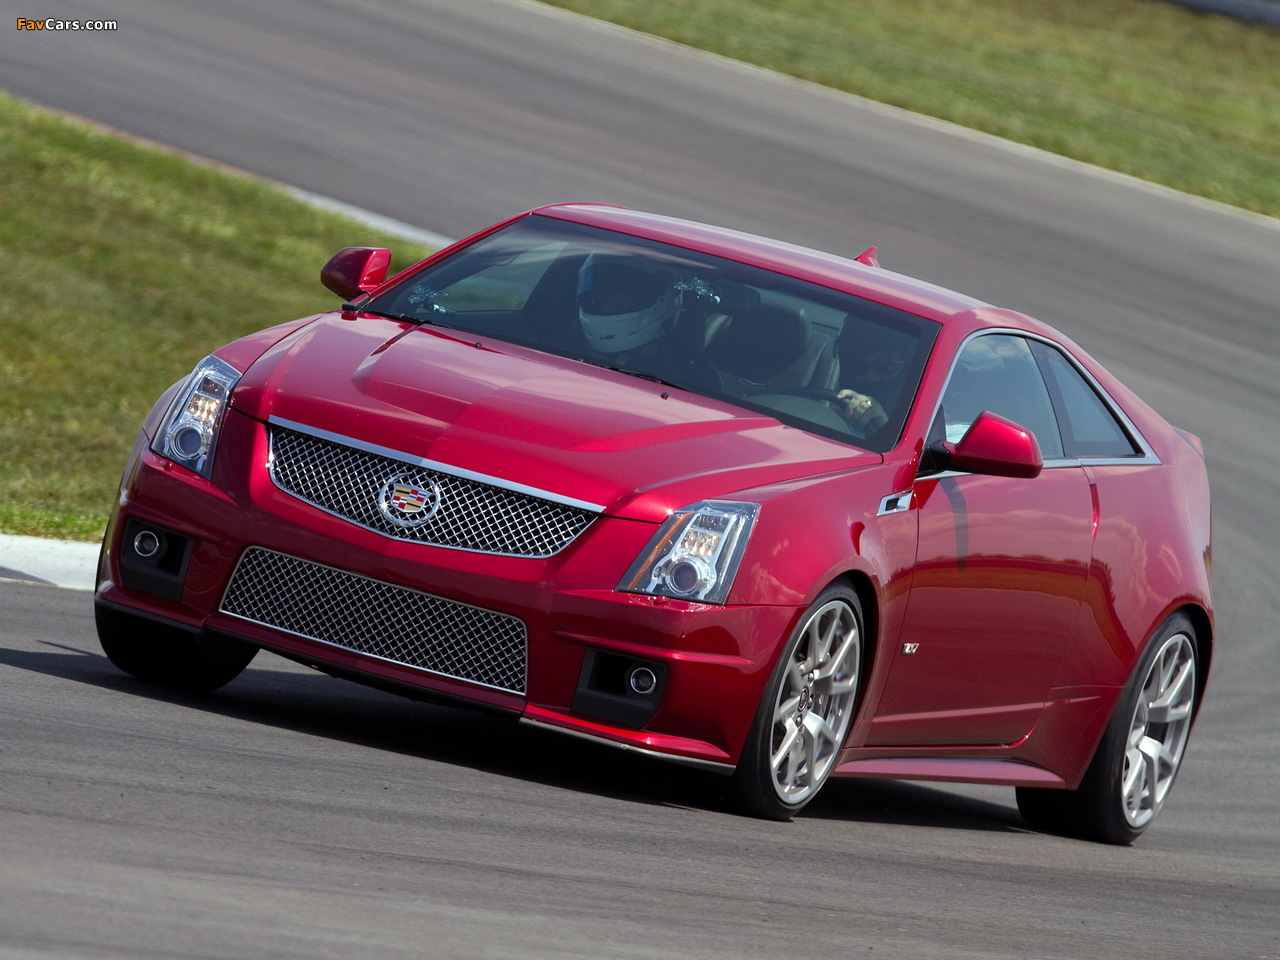 Cadillac CTS-V Coupe 2010 images (1280 x 960)